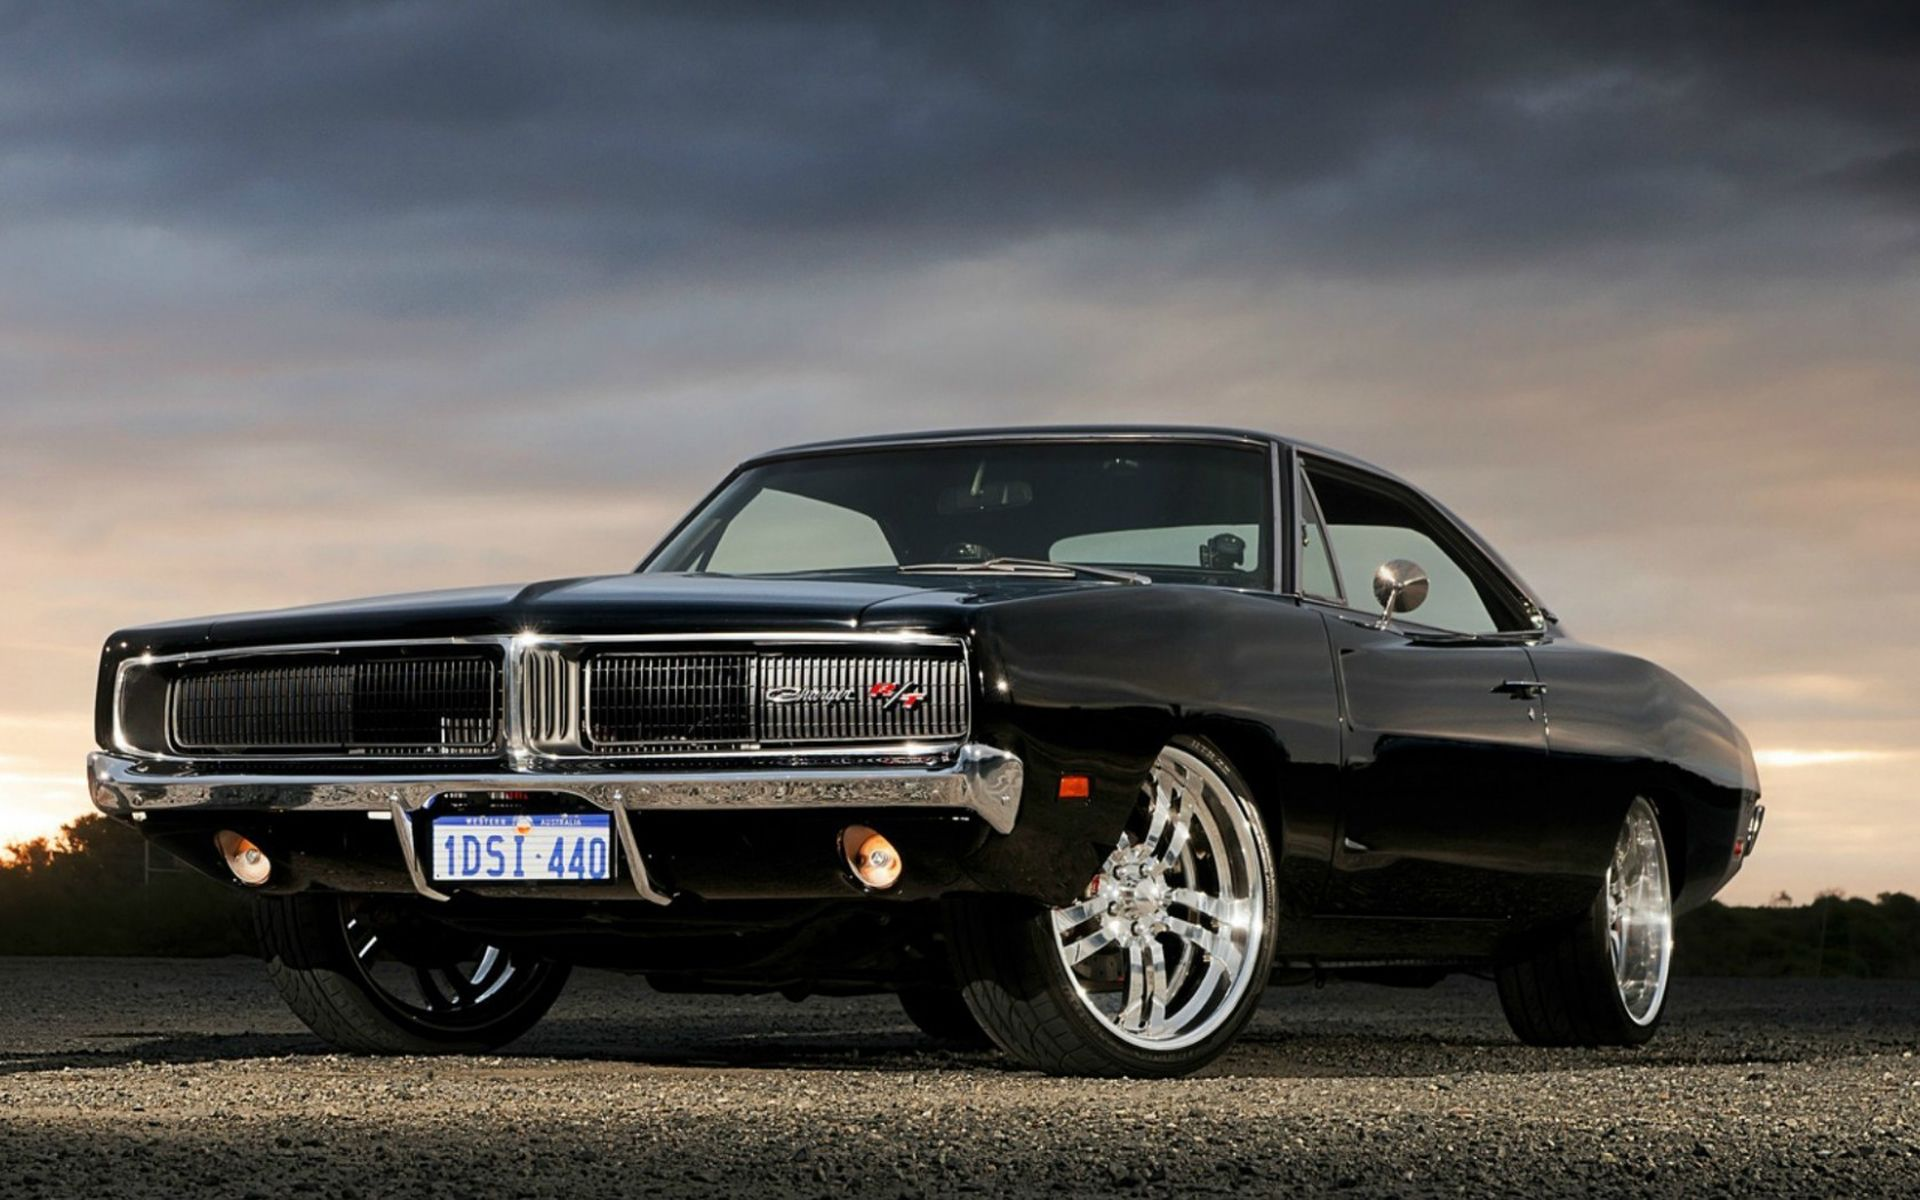 Dodge Charger Rt Wallpapers Top Free Dodge Charger Rt Backgrounds Wallpaperaccess